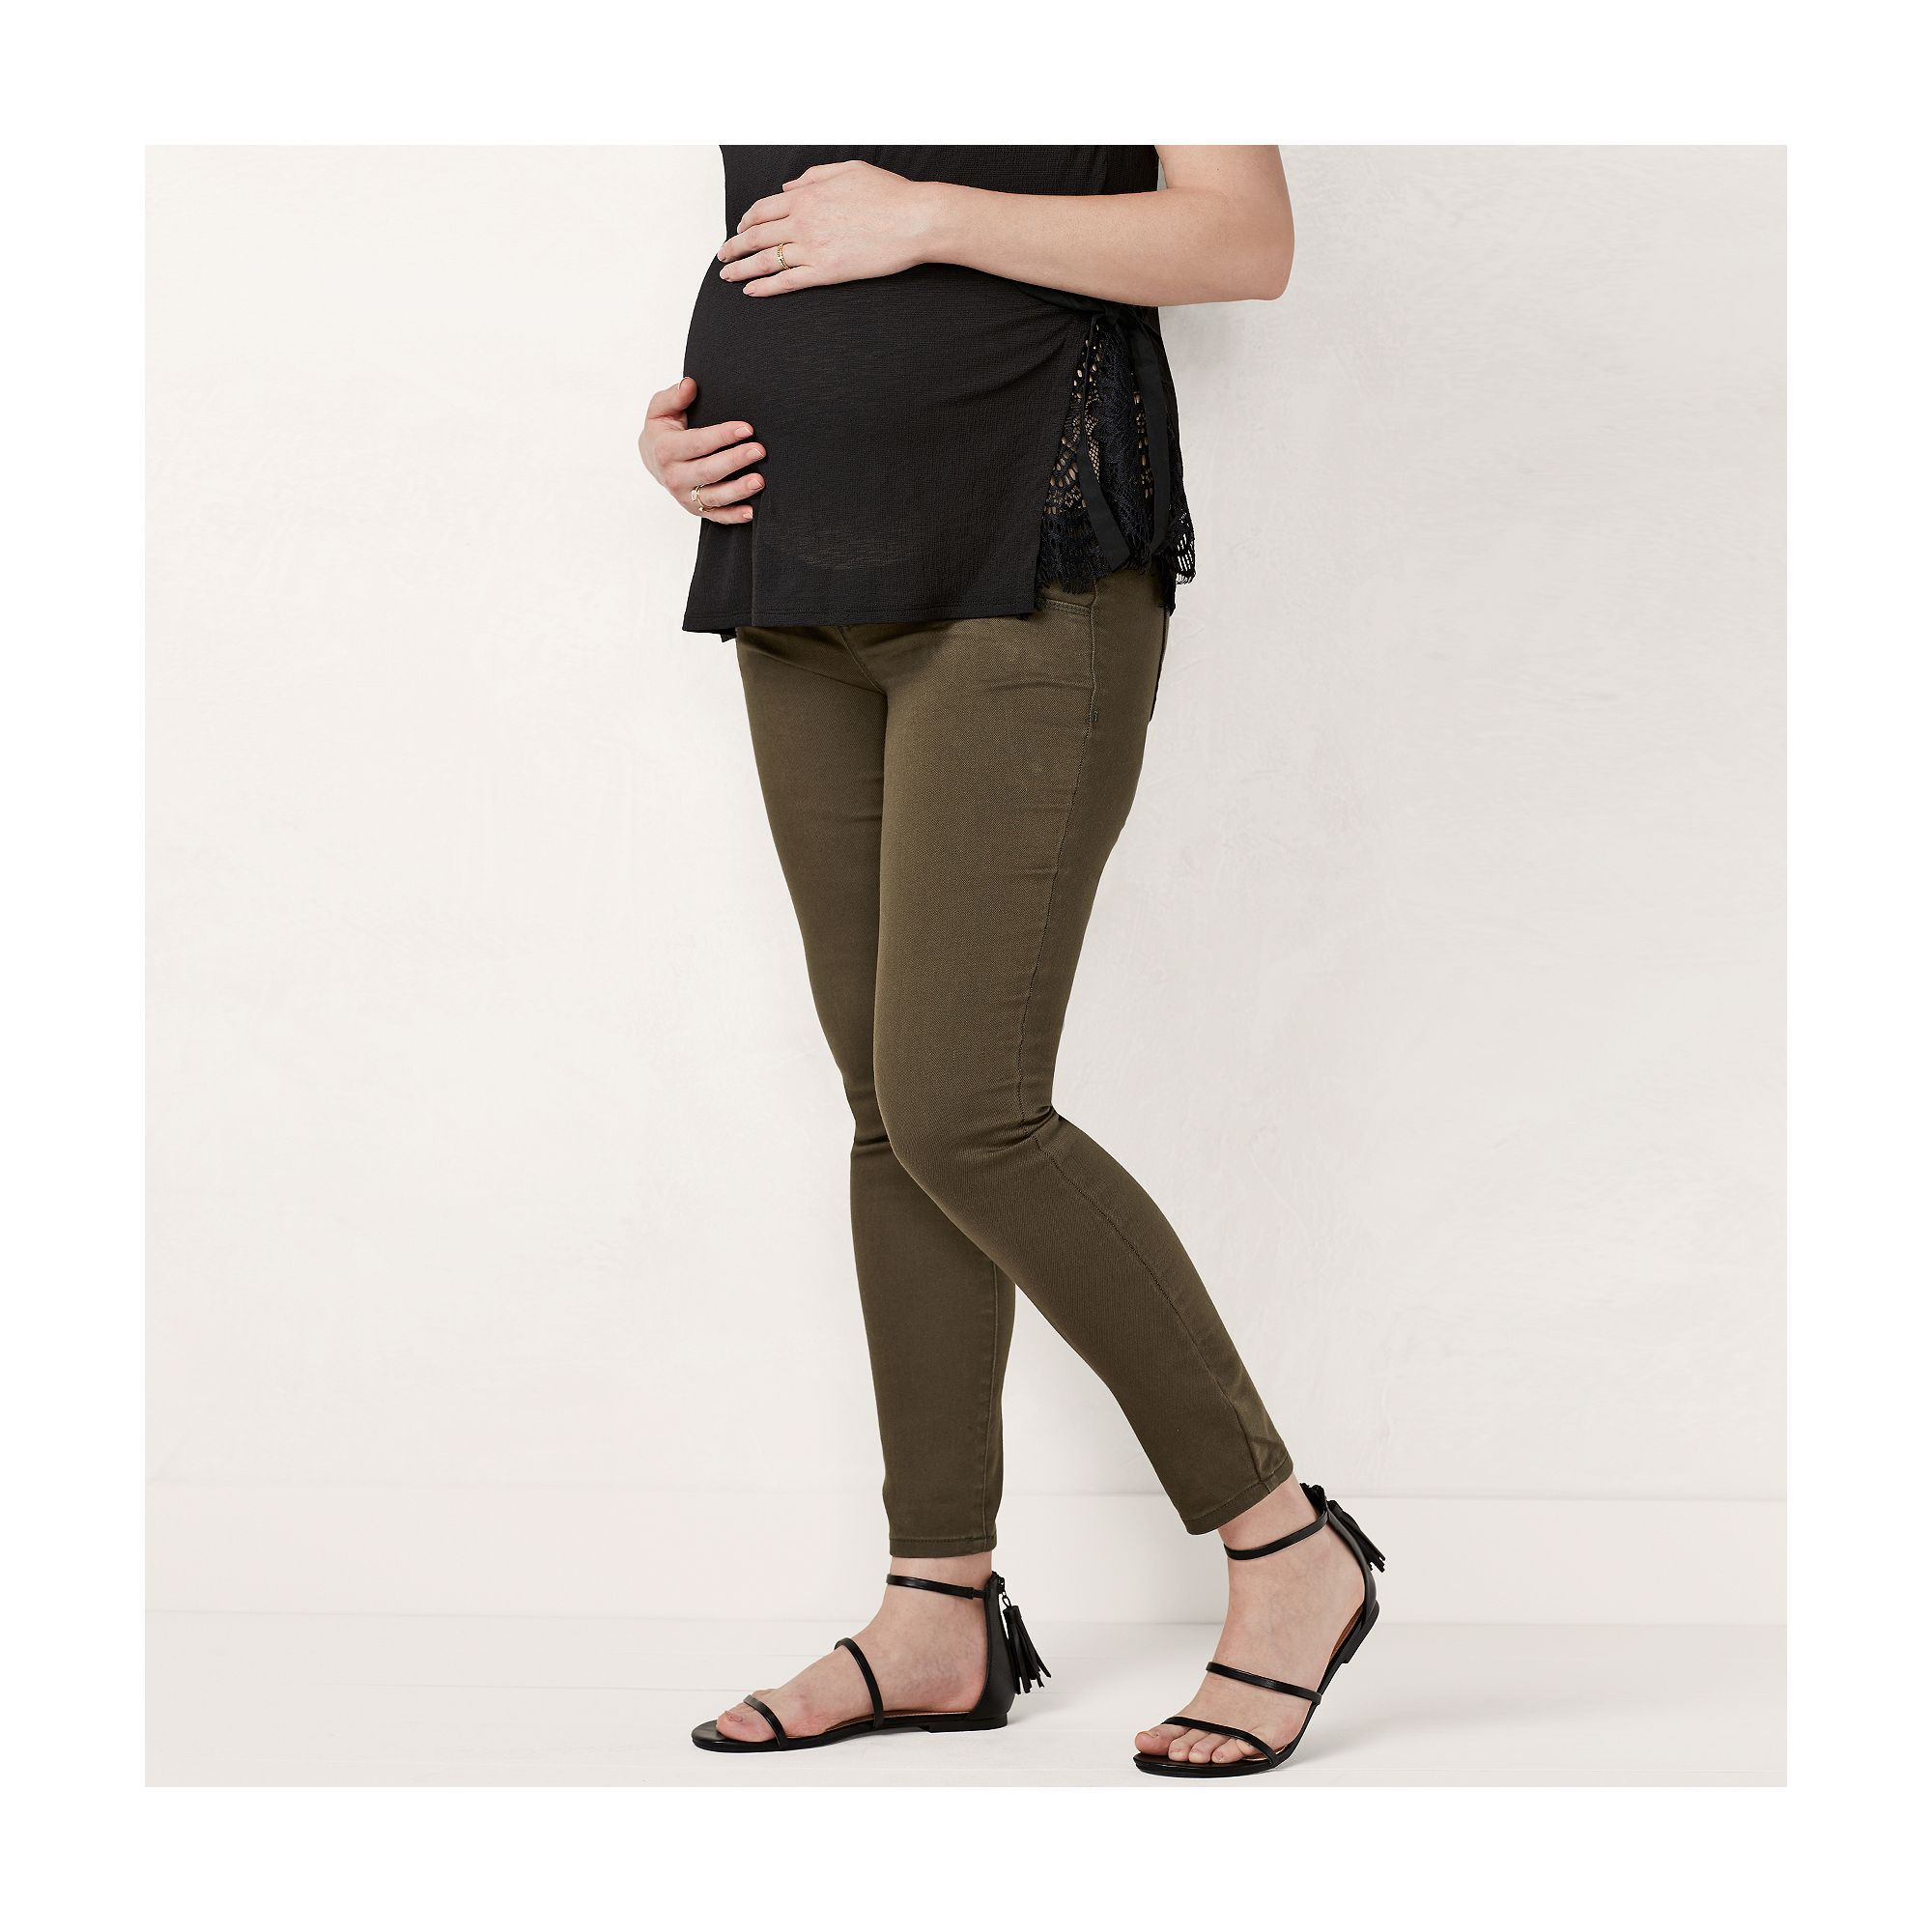 4e67b35f6ef29 Maternity LC Lauren Conrad Belly Panel Jeggings, Women's, Size: 10-Mat,  Green